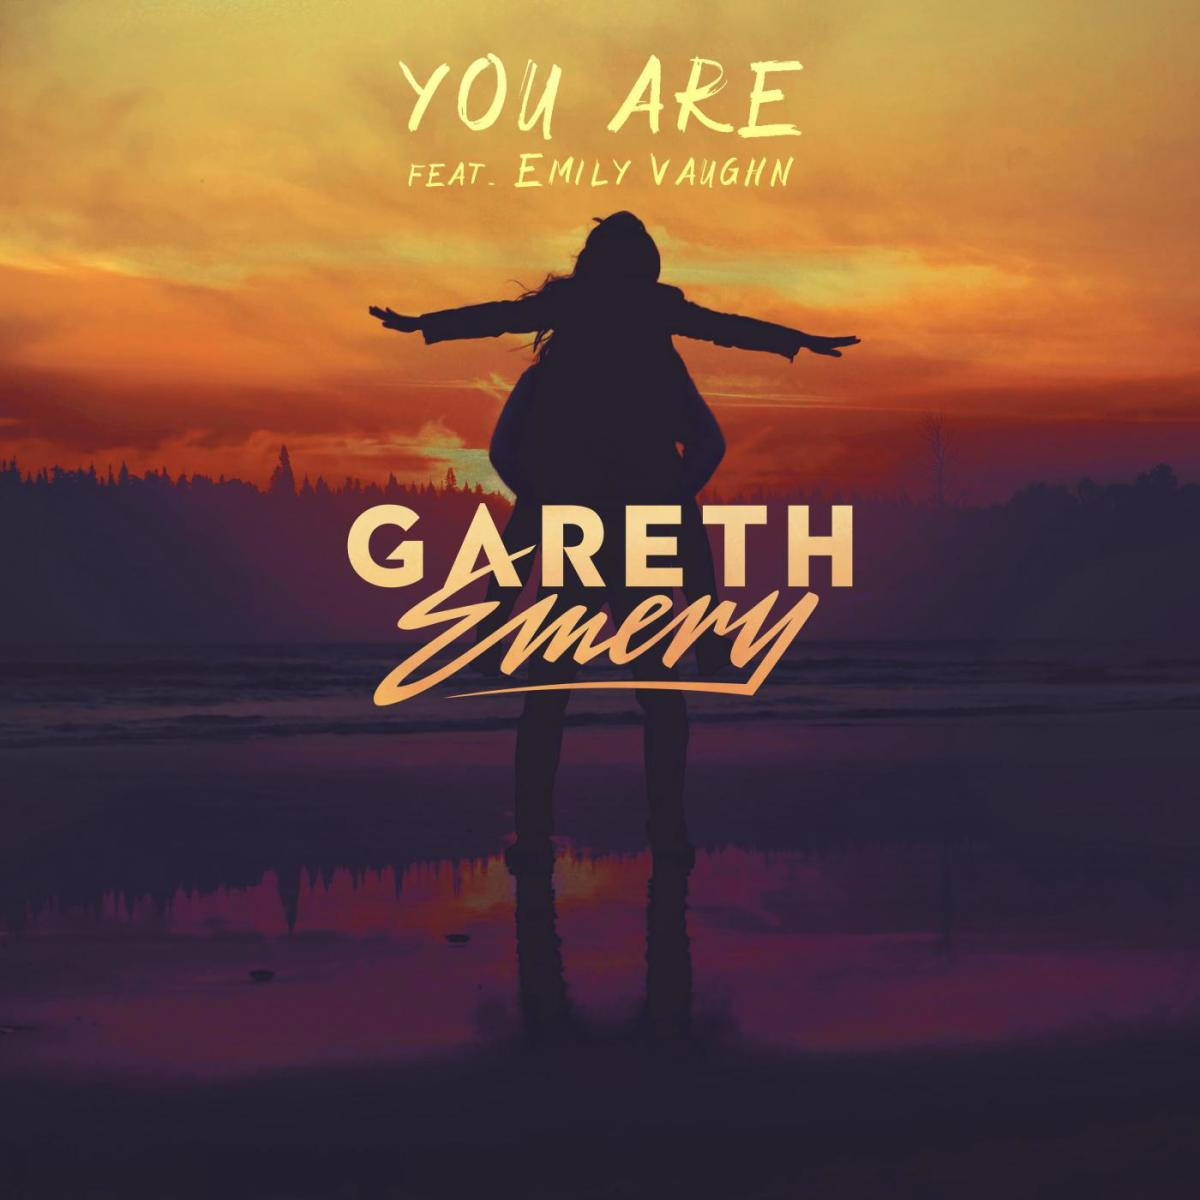 You Are - Gareth Artwork